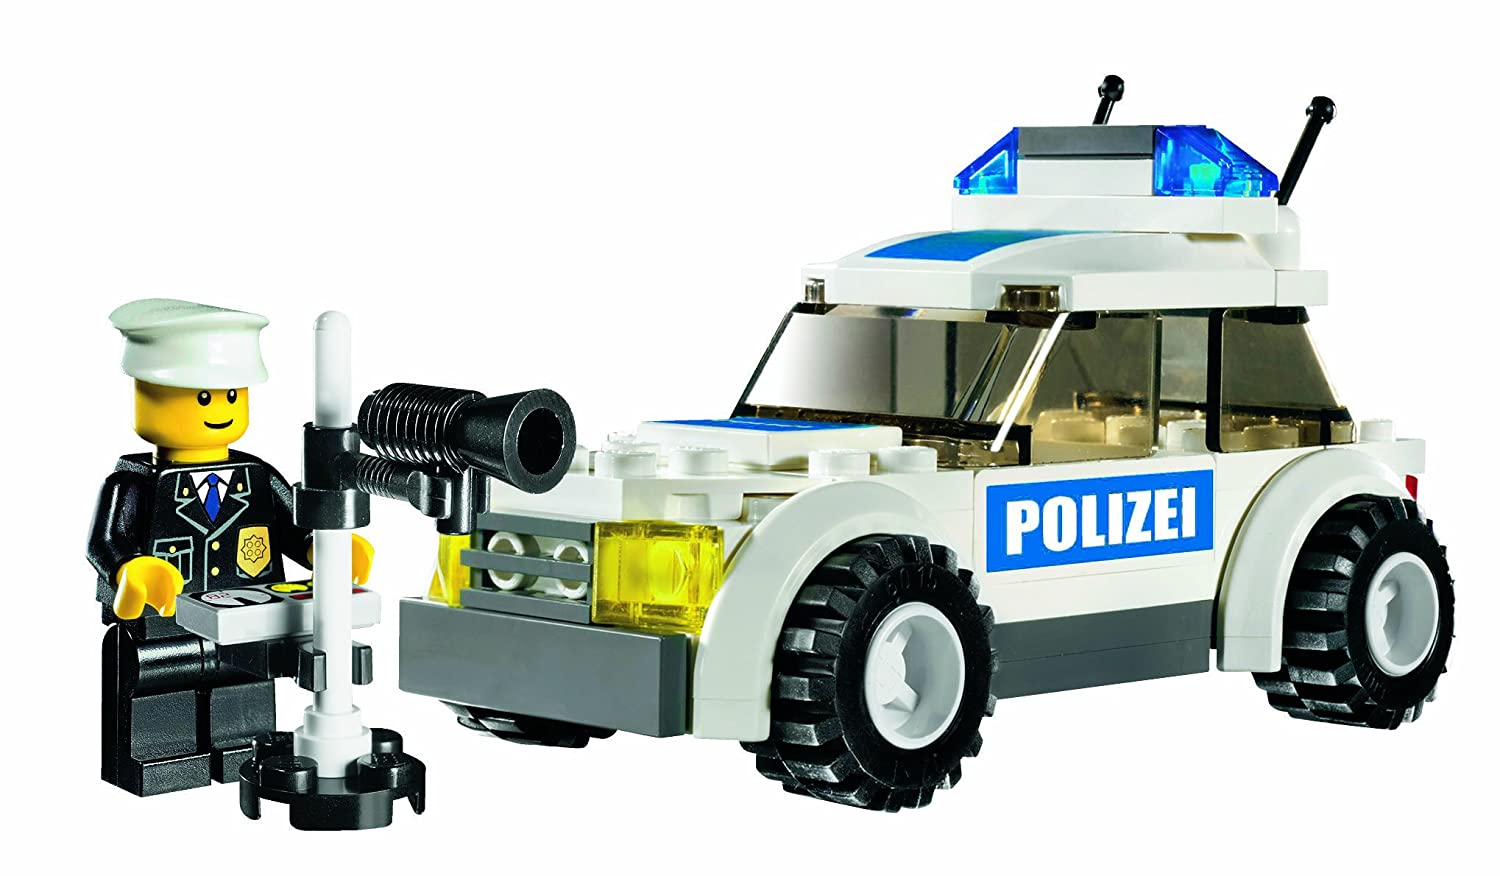 lego city 4439 heavy lift helicopter with Lego Police on LEGO City 4439 Heavy Lift Helicopter moreover Nowosci City Lesna Policja in addition Grand Prix Truck 60025 additionally Heavy Lift Helicopter in addition Heavy Lift Helicopter.